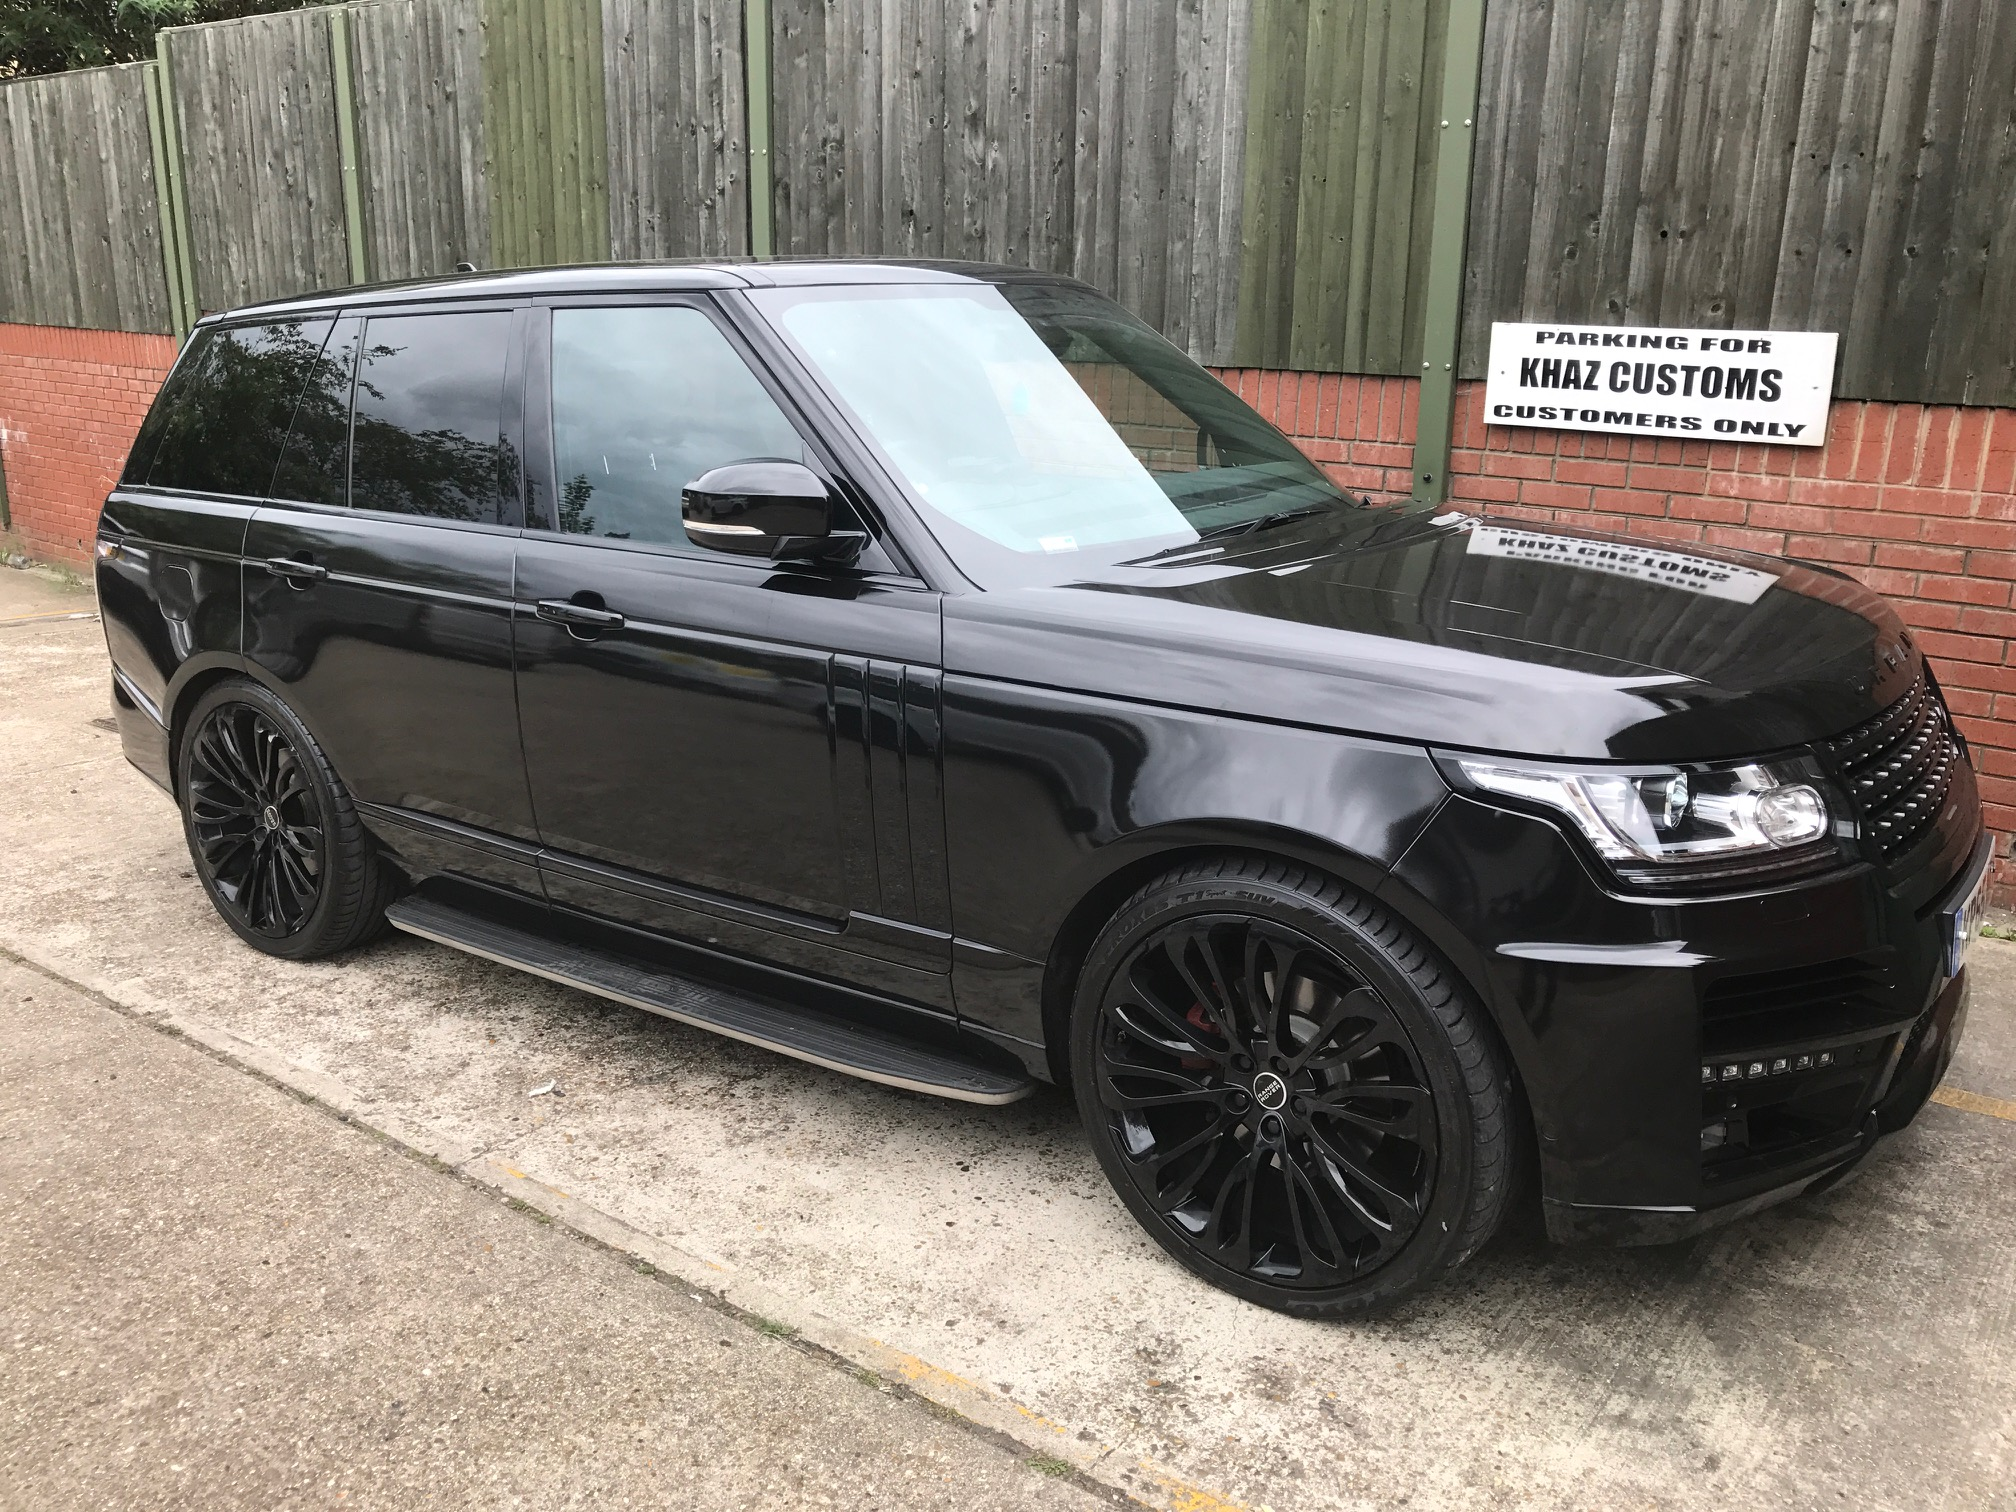 Vogue wrapped in Gloss Black